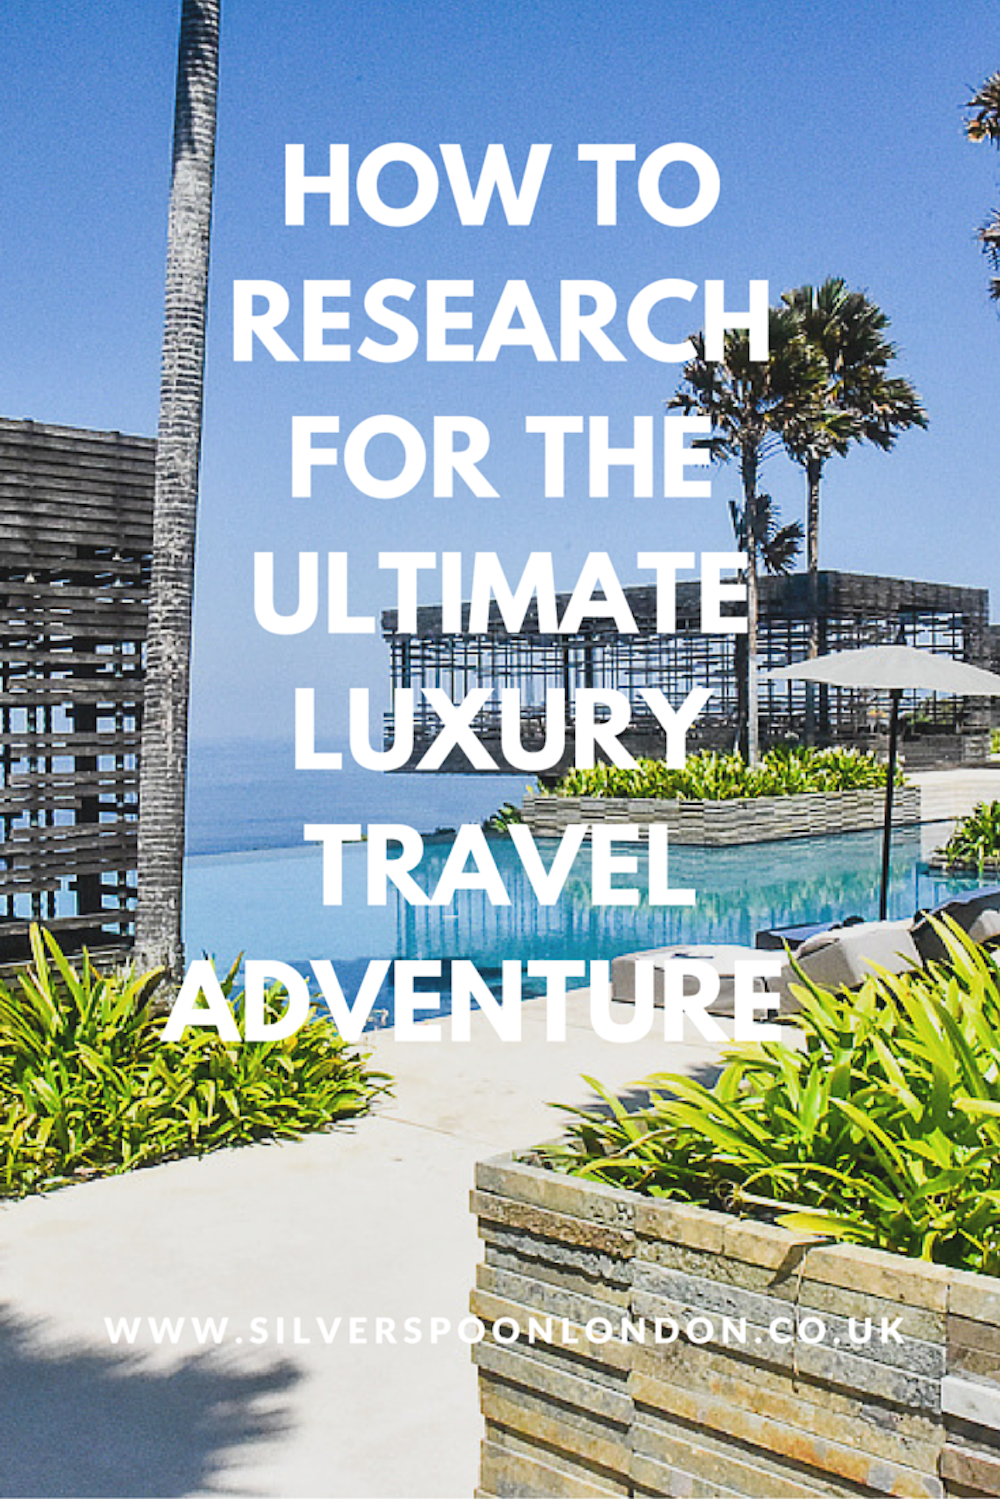 How to Research for the Ultimate Travel Adventure